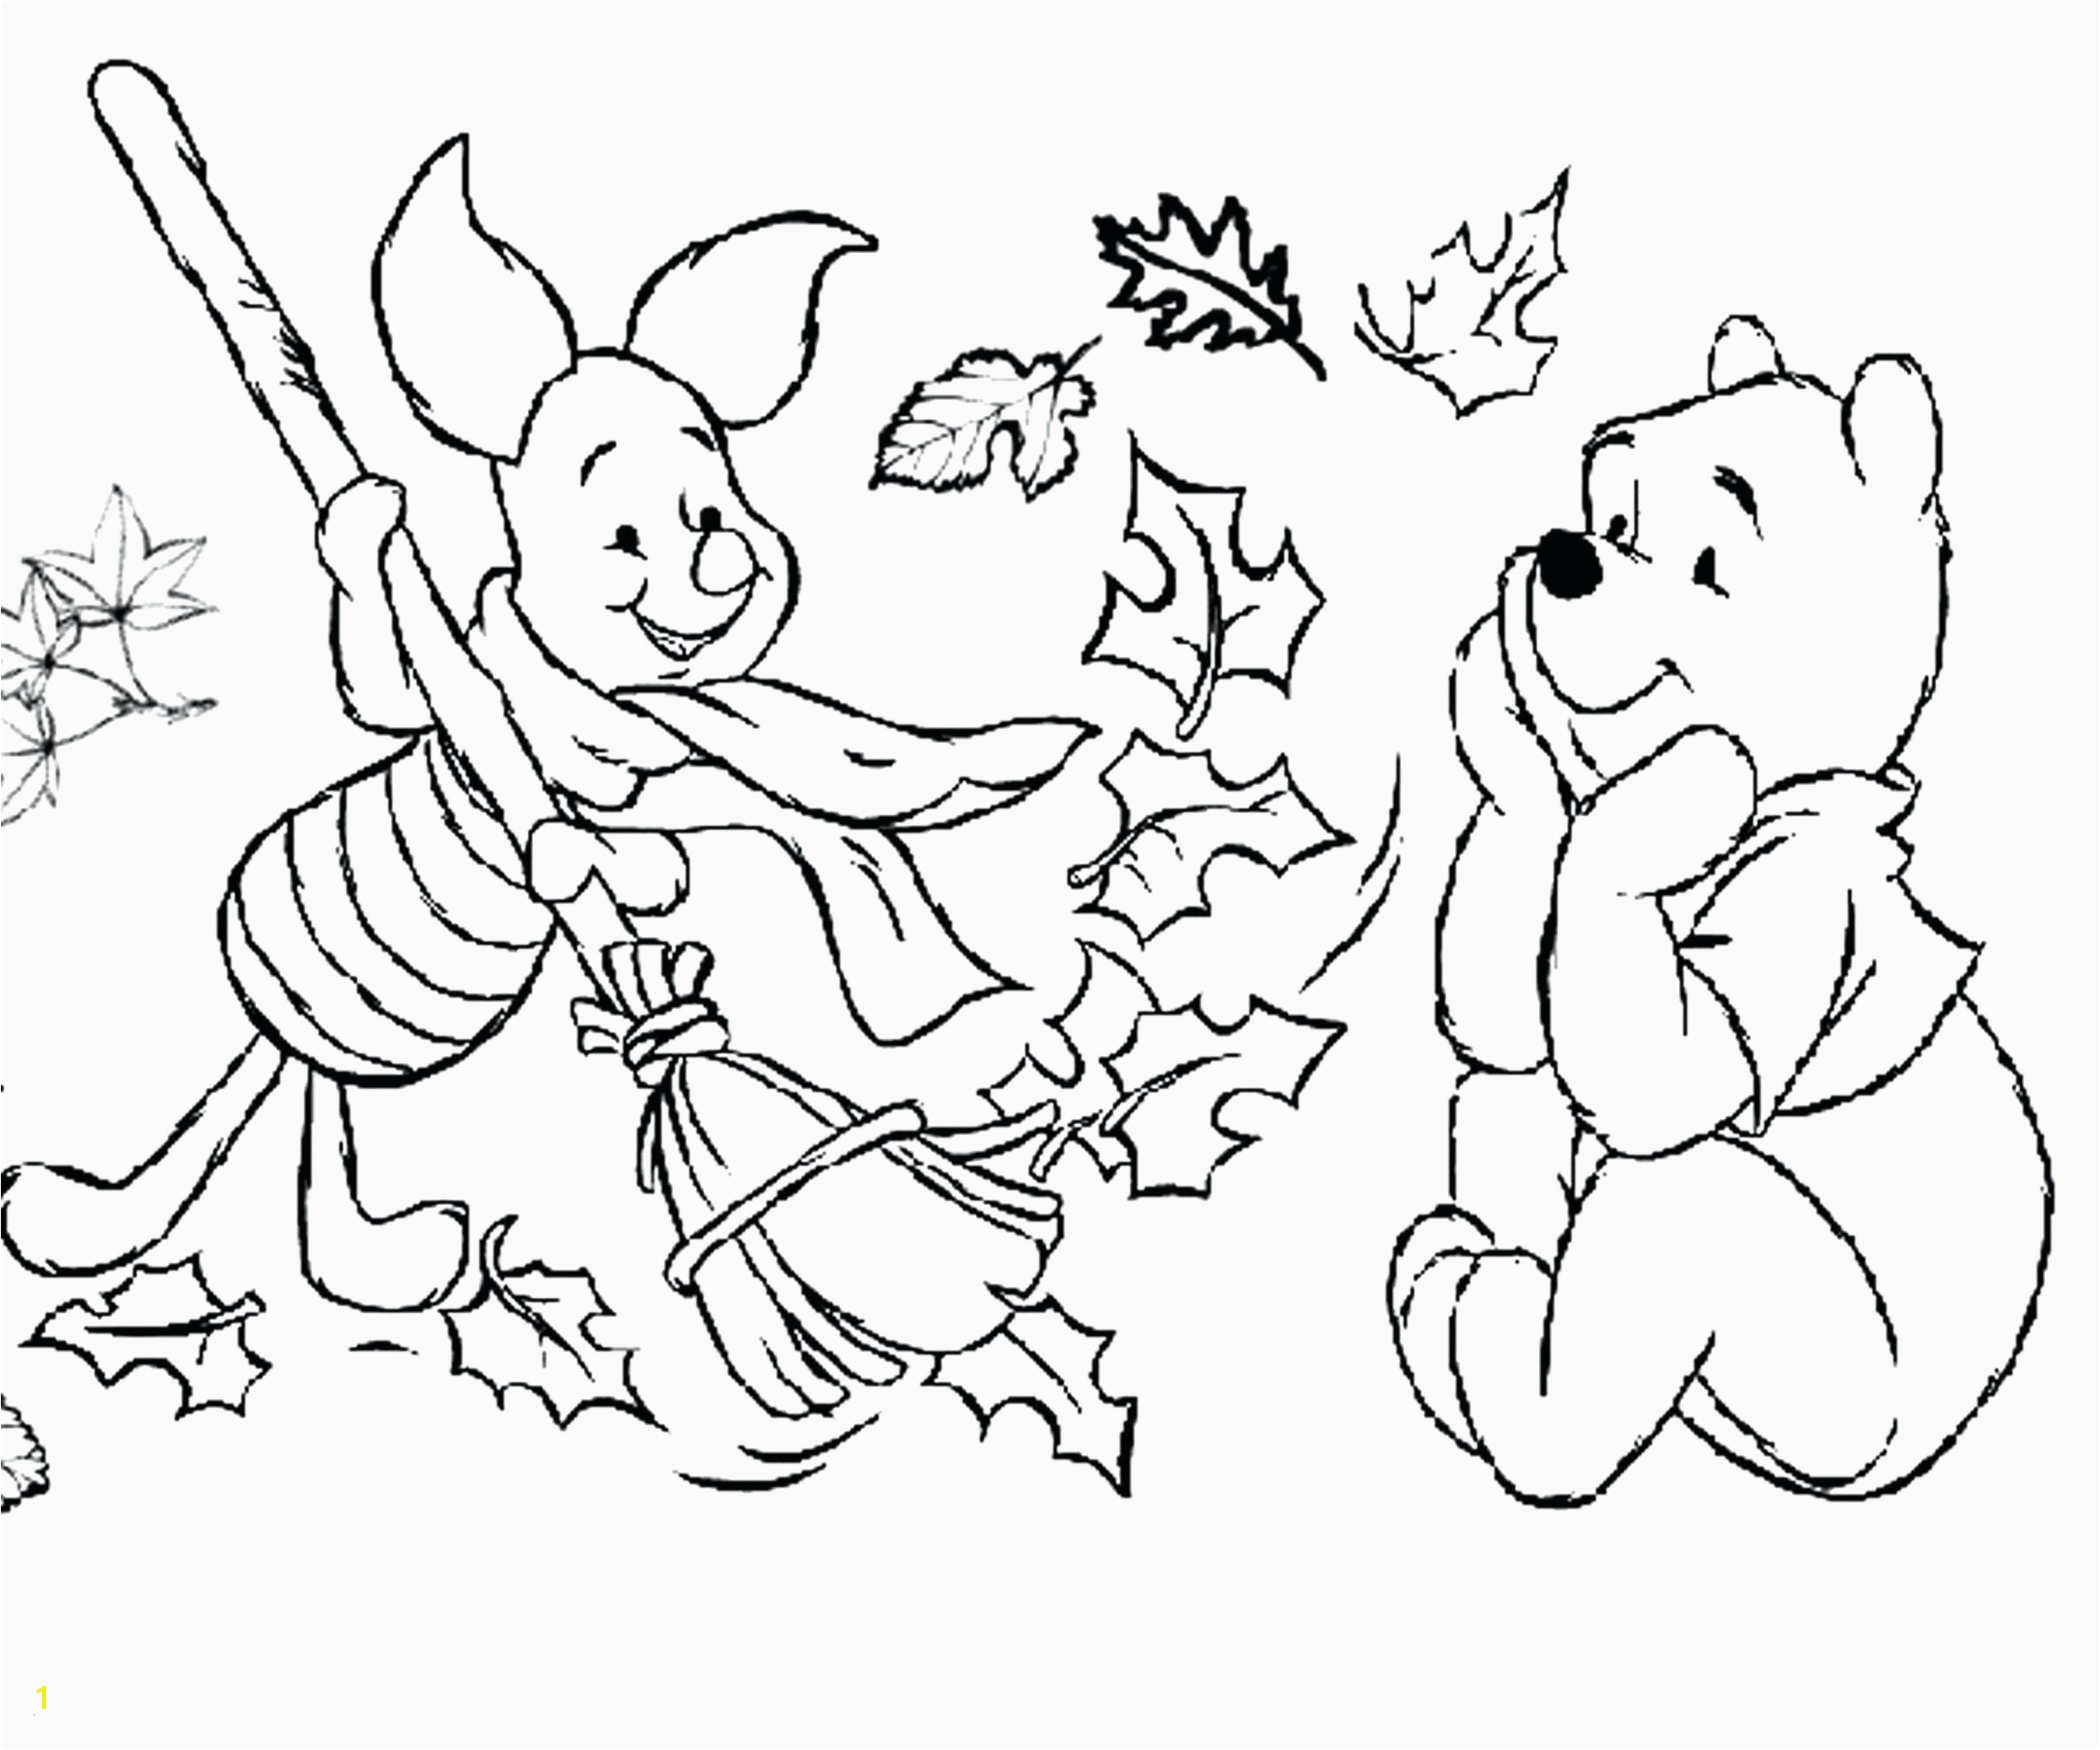 Popcorn Coloring Pages for Kids 14 Inspirational Popcorn Coloring Pages for Kids